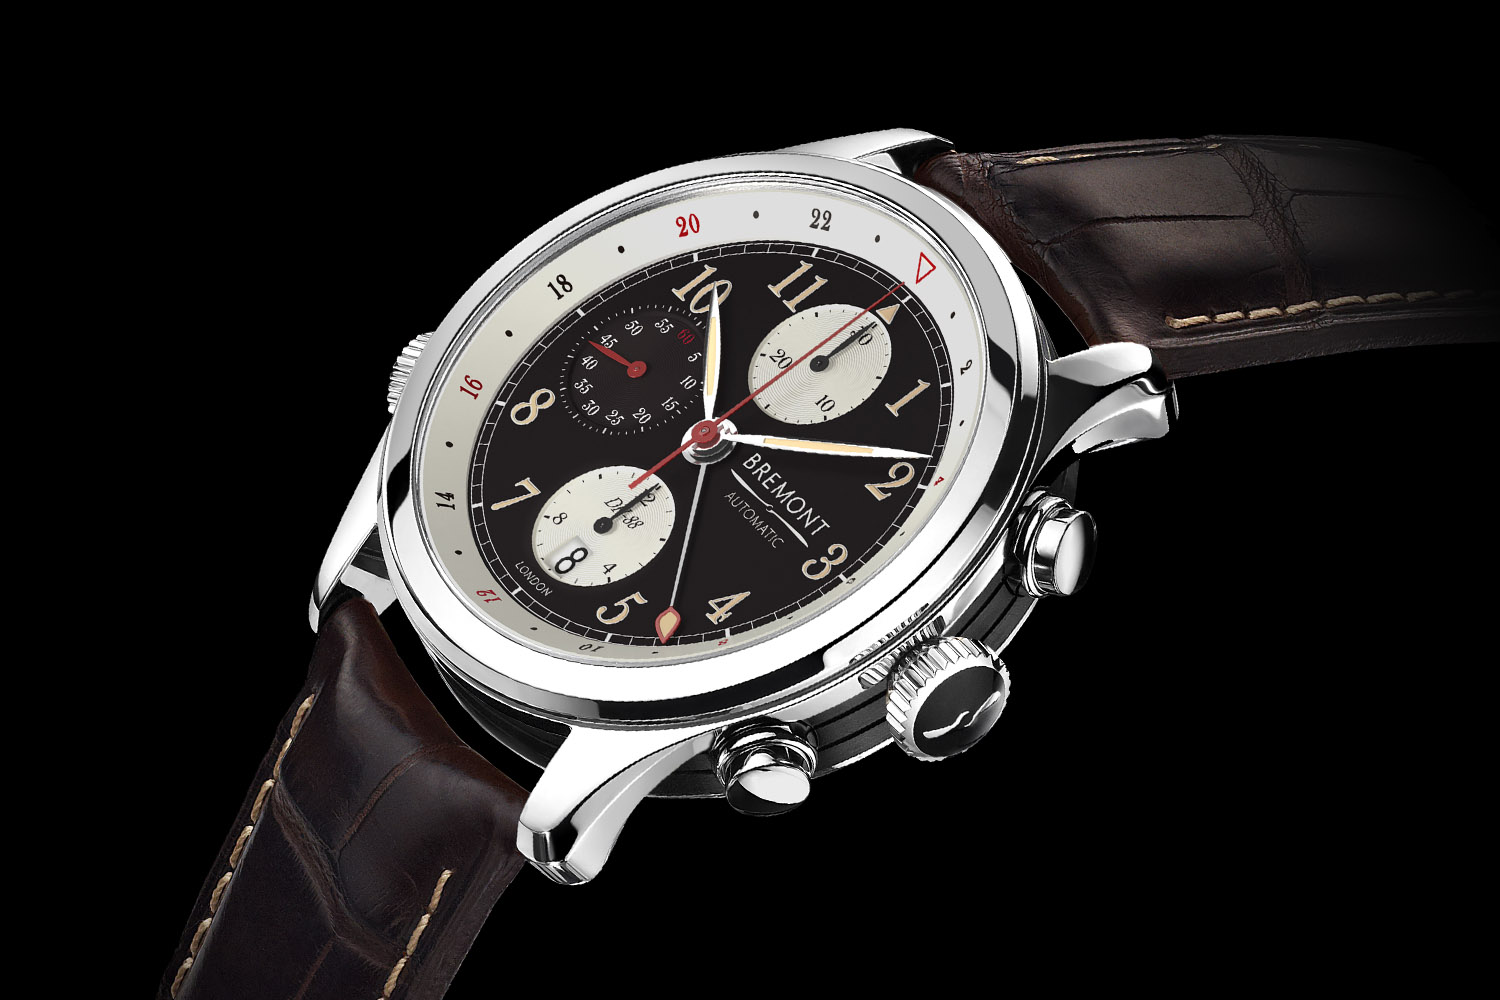 Bremont-DH-88-Comet-Limited-Edition-Watch